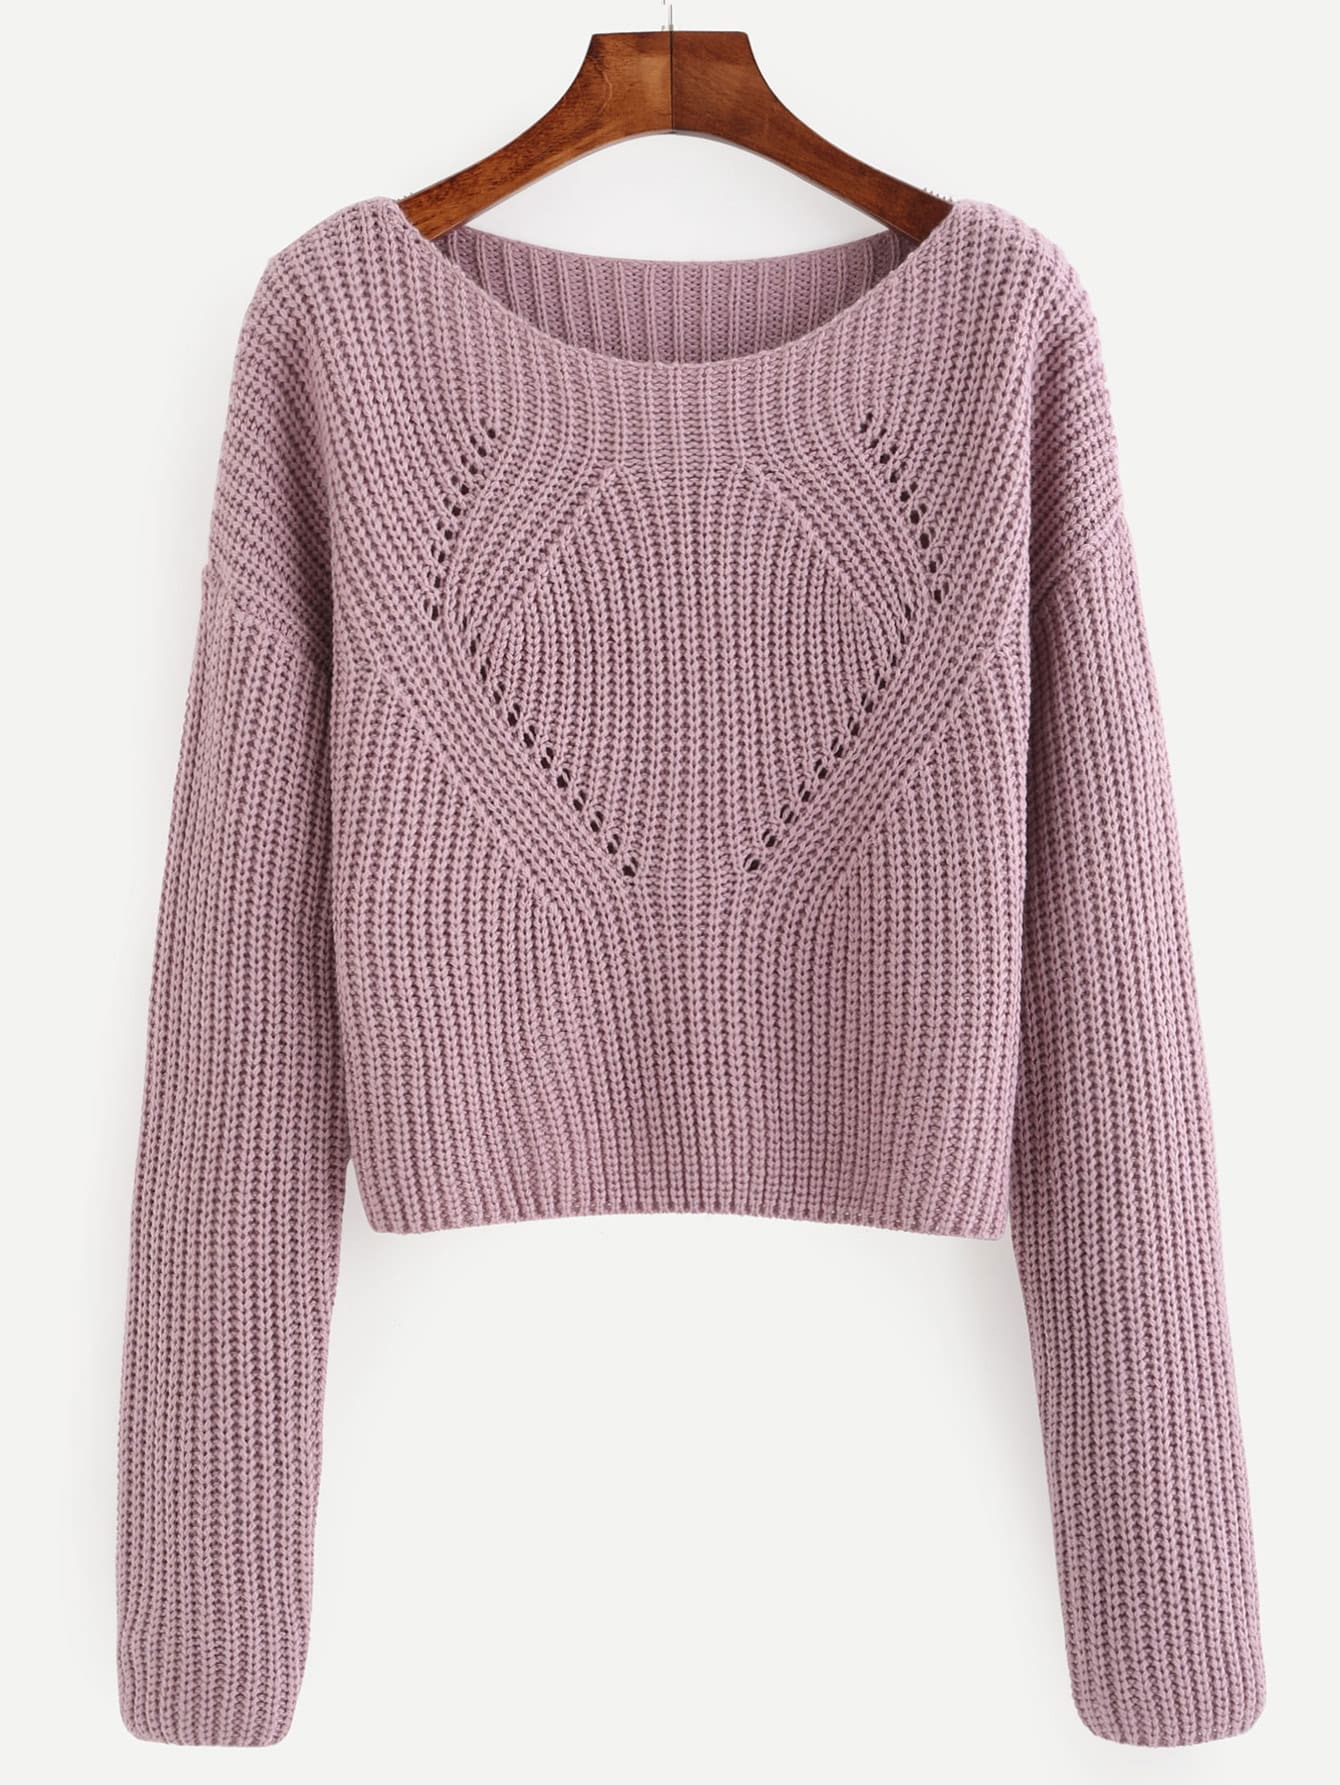 Pale Purple Hollow Out Long Sleeve Sweater sweater160915404